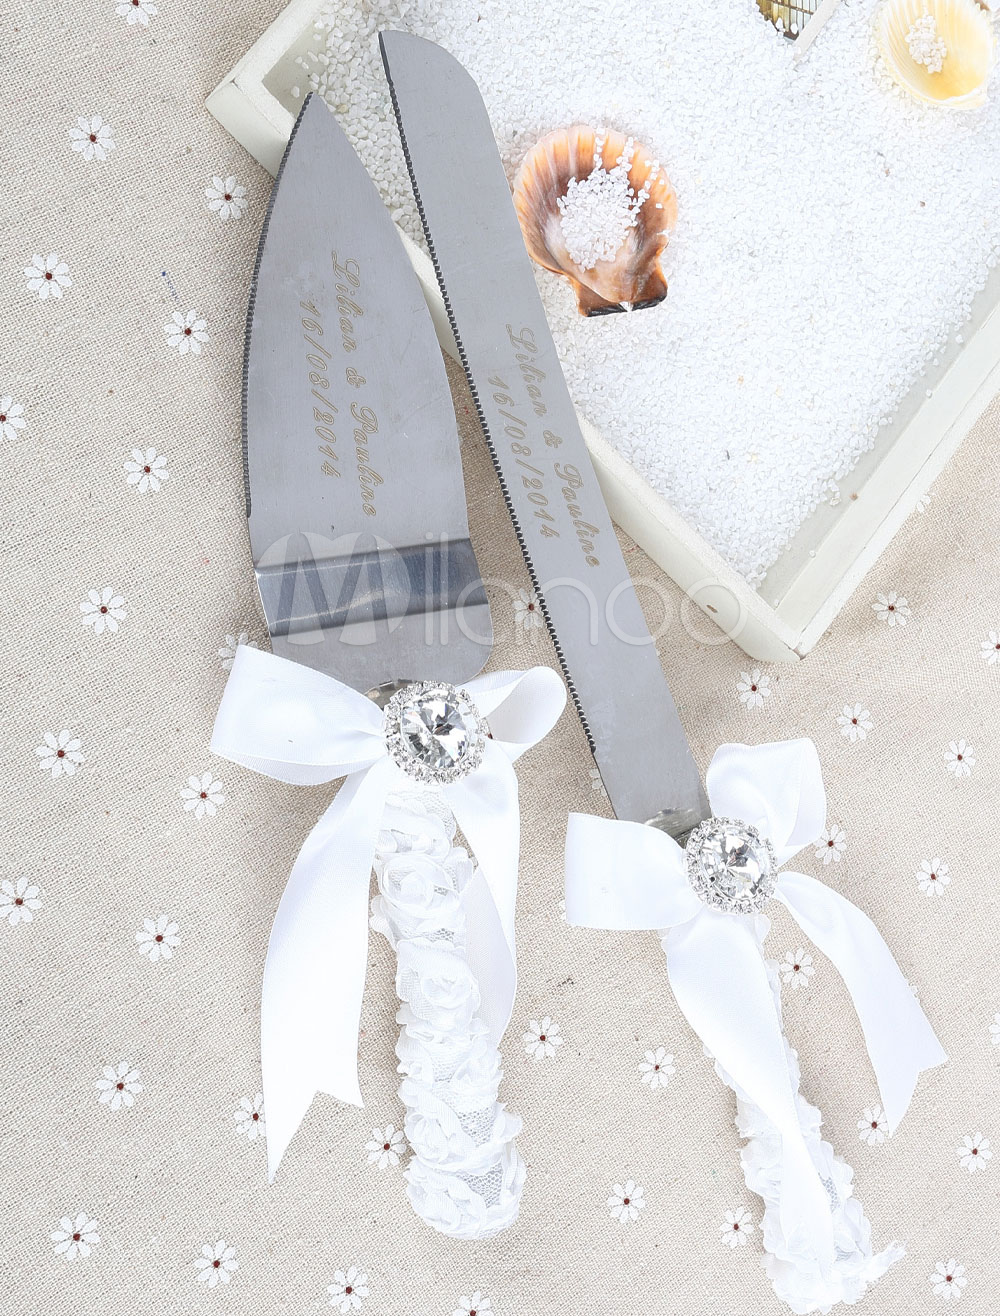 Personalized Cake Knife & Server Set with Ribbon for Wedding